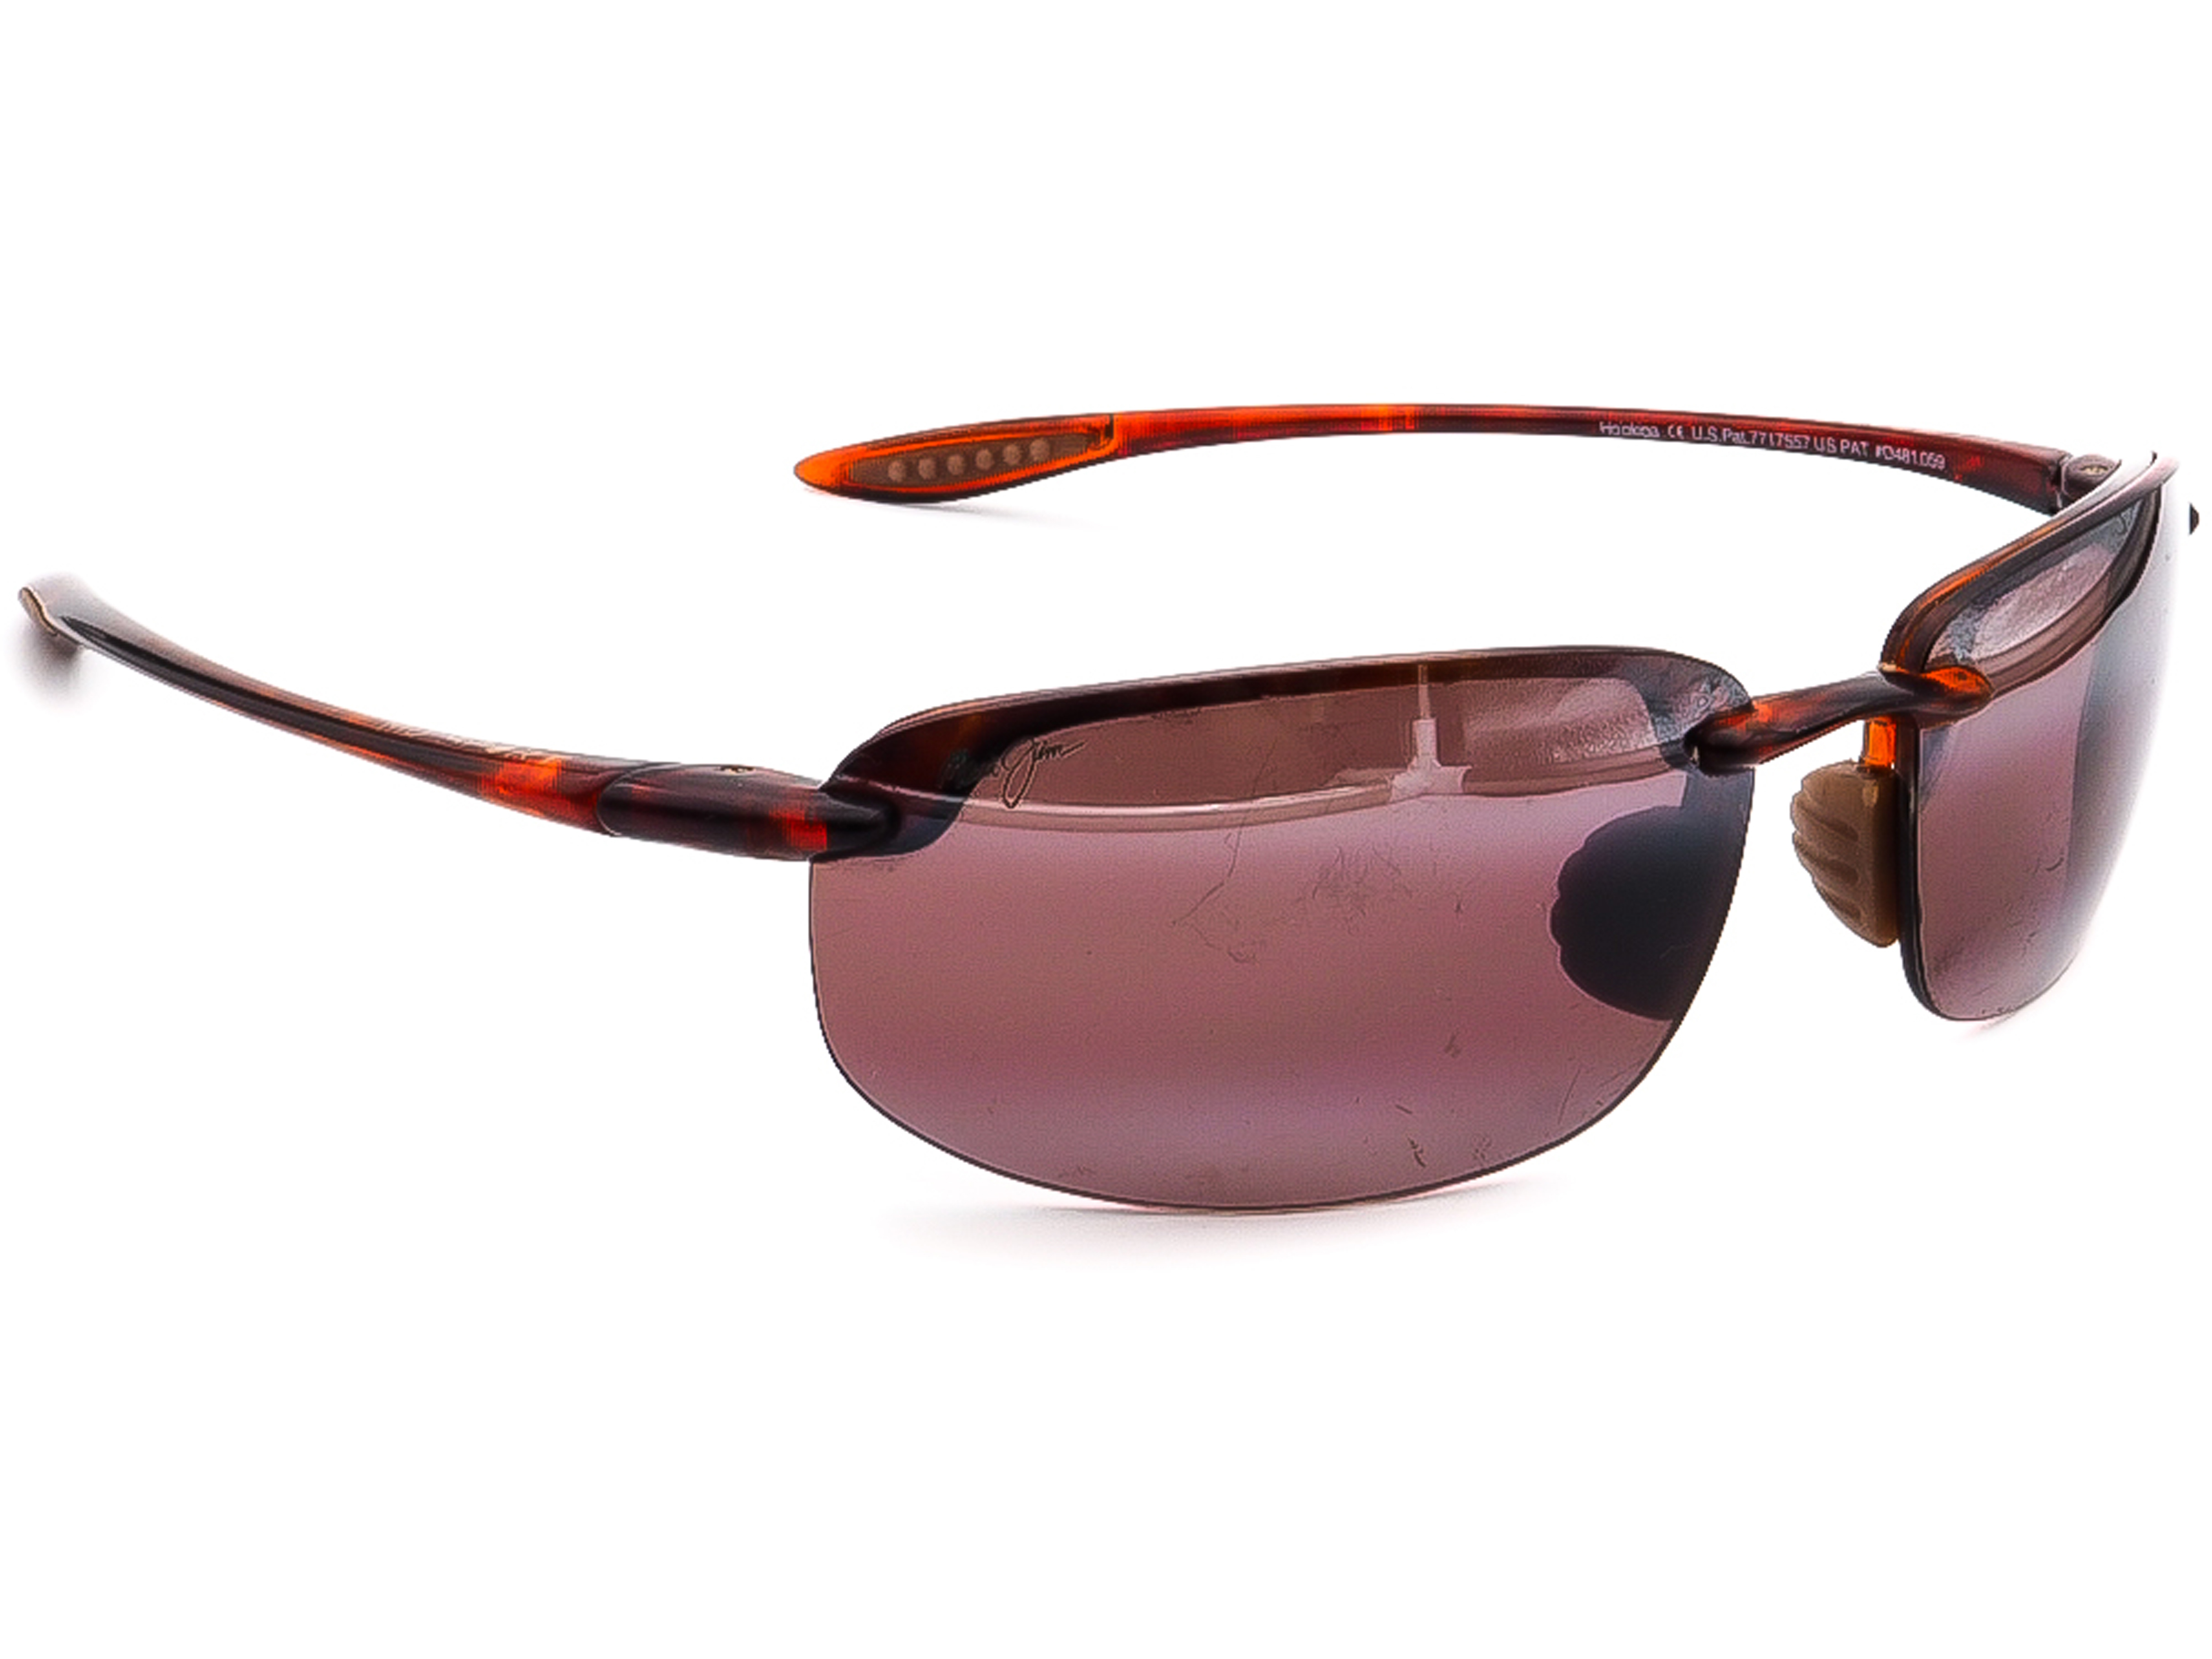 Maui Jim Ho'kopia MJ-407-10 FRAME ONLY Sunglasses